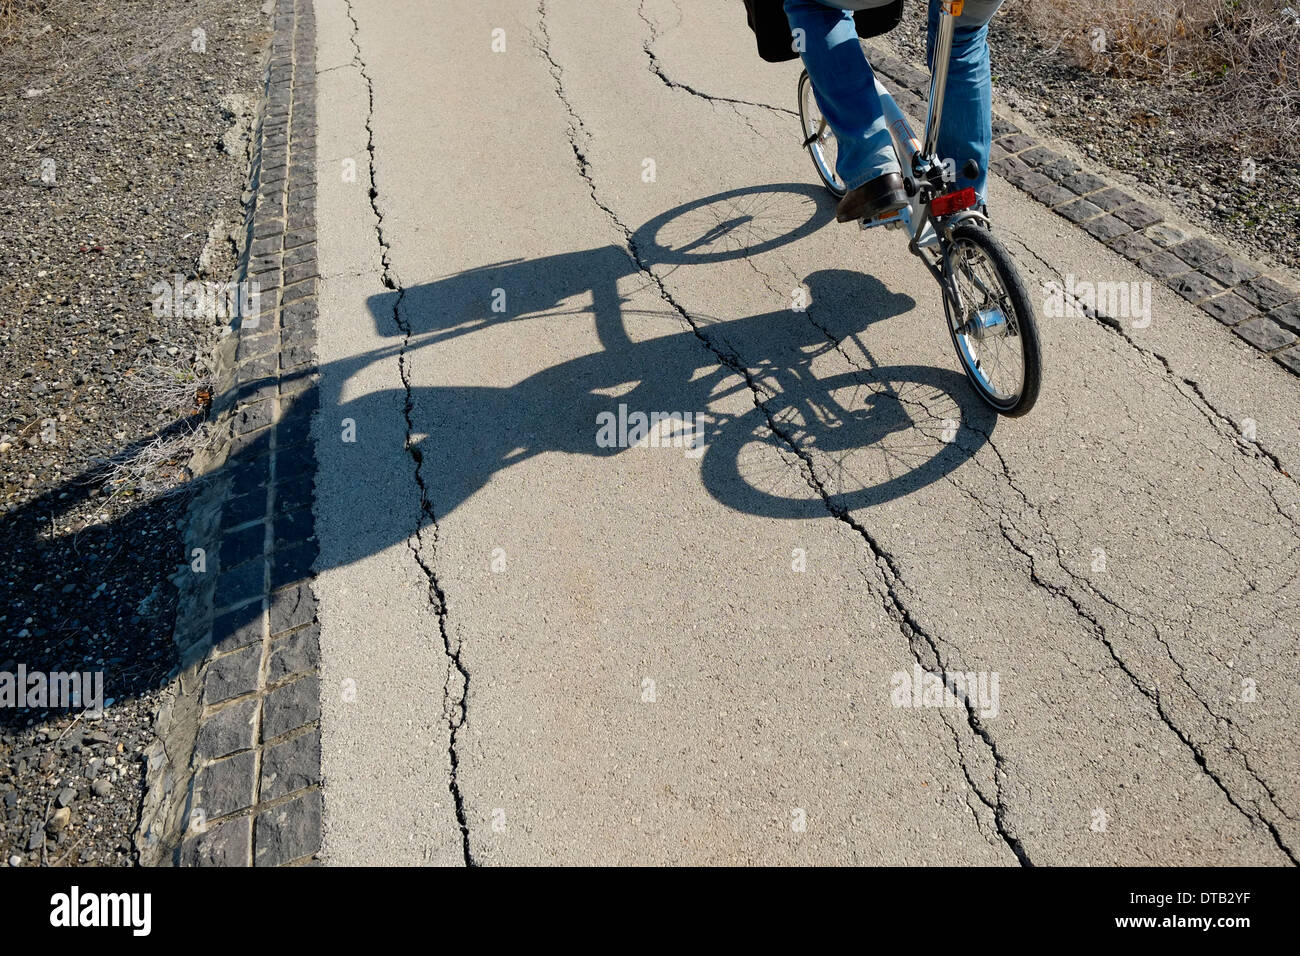 A bicycler casts a shadow in timeworn asphalt in the Galilee area northern Israel - Stock Image